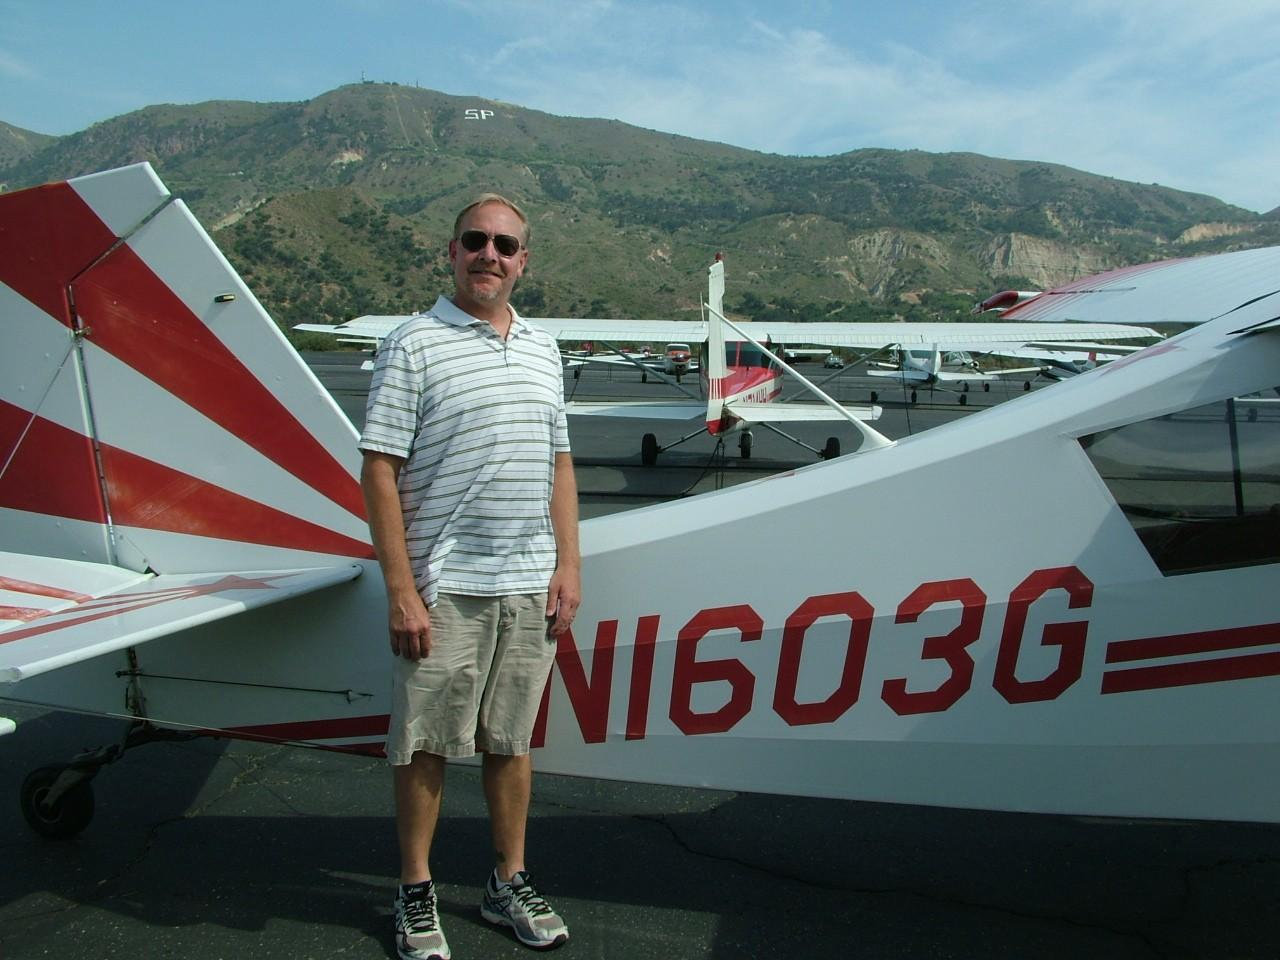 Tailwheel Endorsement - Chuck Williams